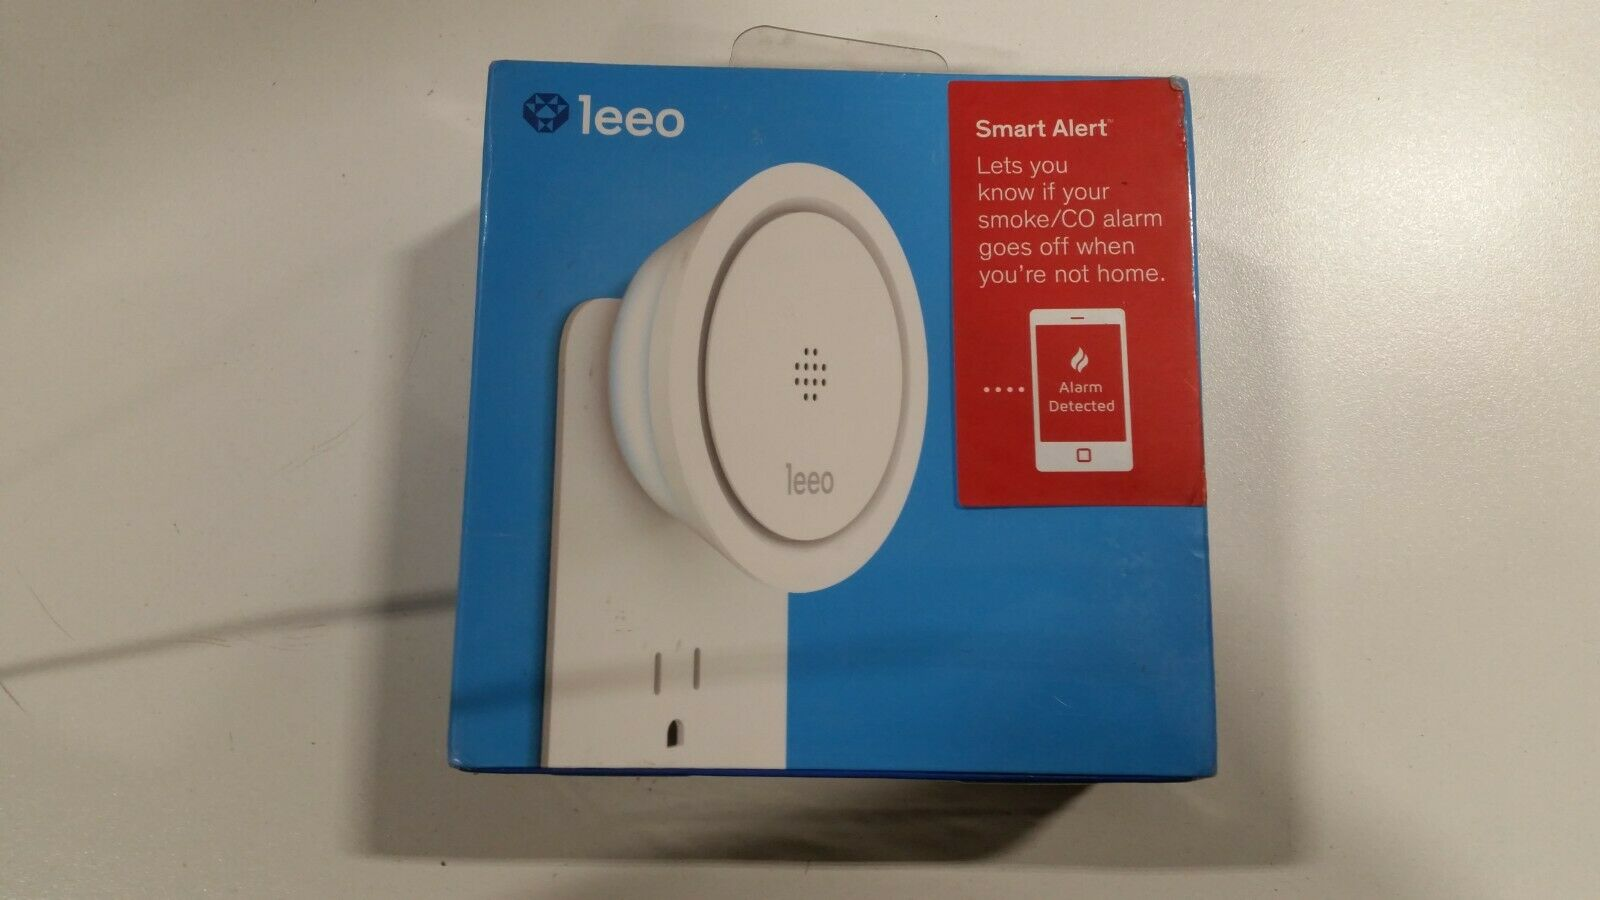 Leeo Smart Alert Smoke/CO Remote Alarm Monitor for iOS and A